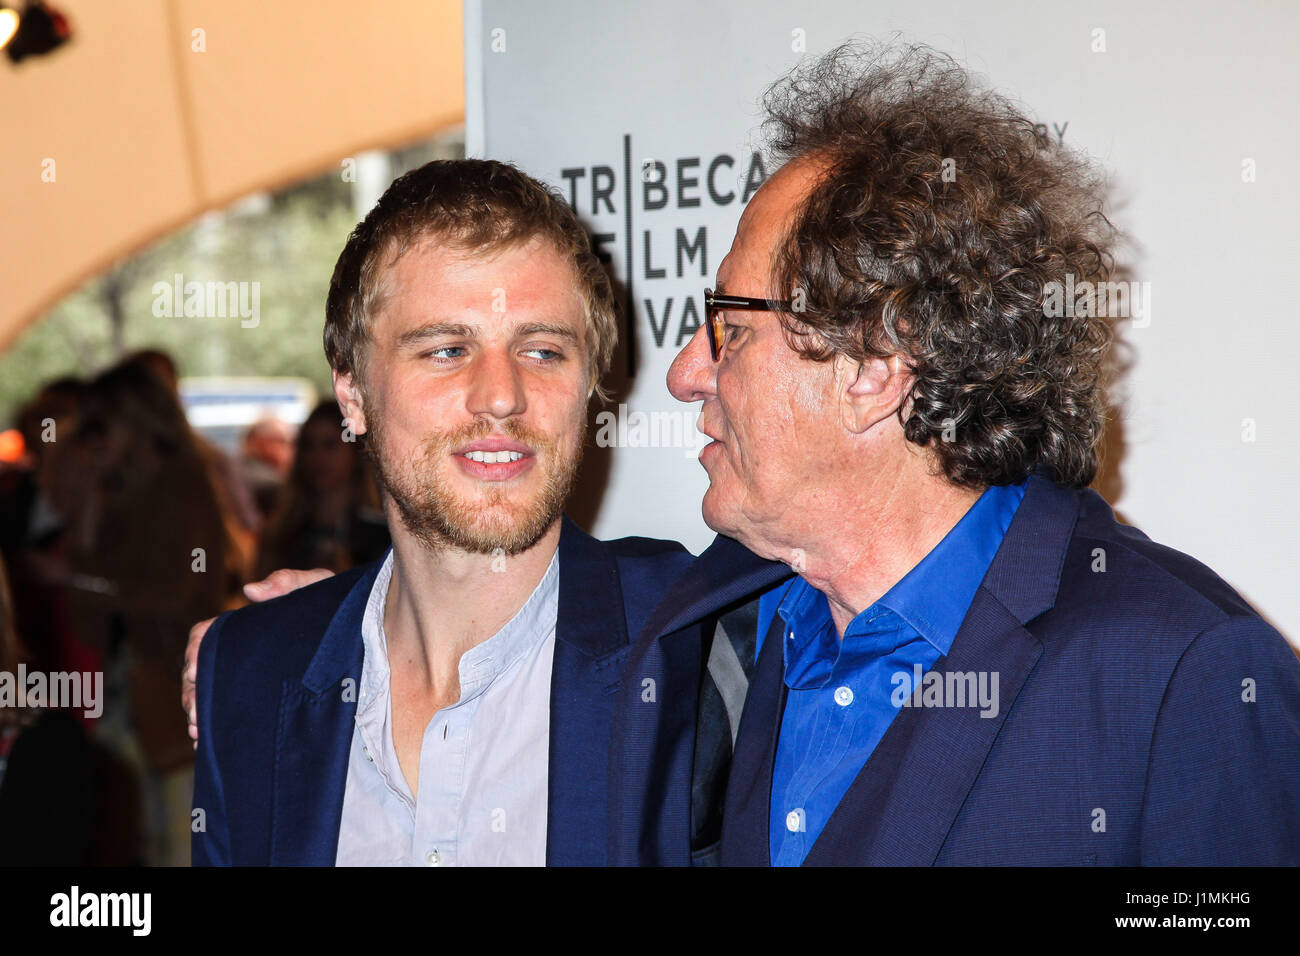 Actors Johnny Flynn and Geoffrey Rush attend the 'Genius' Premiere during the 2017 Tribeca Film Festival - Stock Image